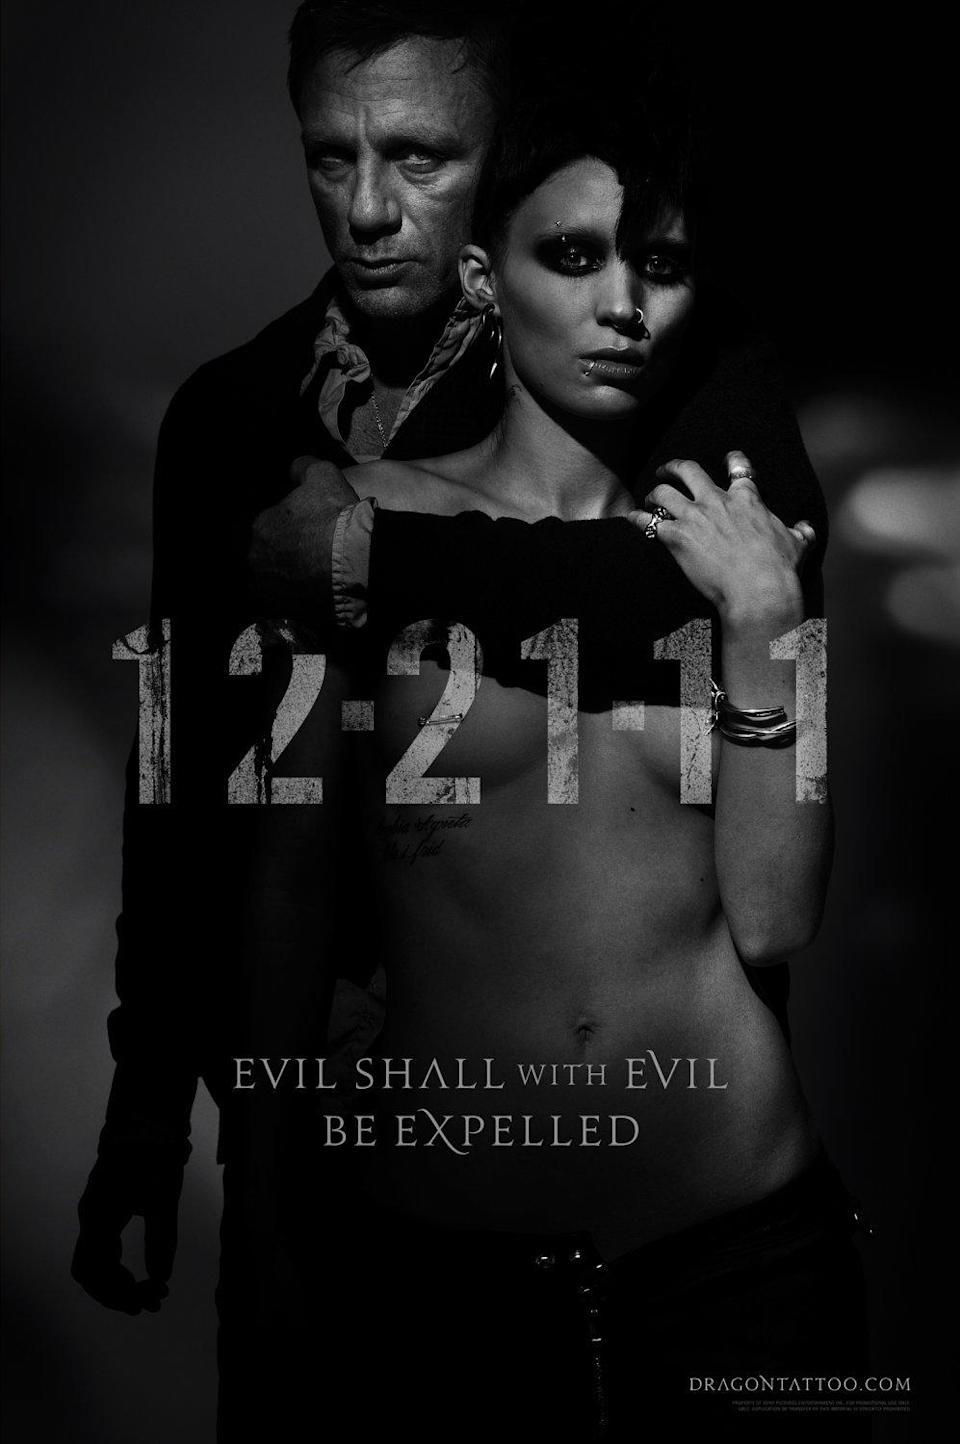 <p><b>Why it was banned: </b>Boobs, basically. Sony created two versions of this moody black and white poster – one showing off Lisbeth Salander, nipple ring and all, plus another with her 'assets' obscured. Both were banned by the MPAA. If the sight of an errant nipple put them off their breakfast, we hope the censors weren't eating when they watched what Lisbeth does to her tormentors in the actual movie.</p>